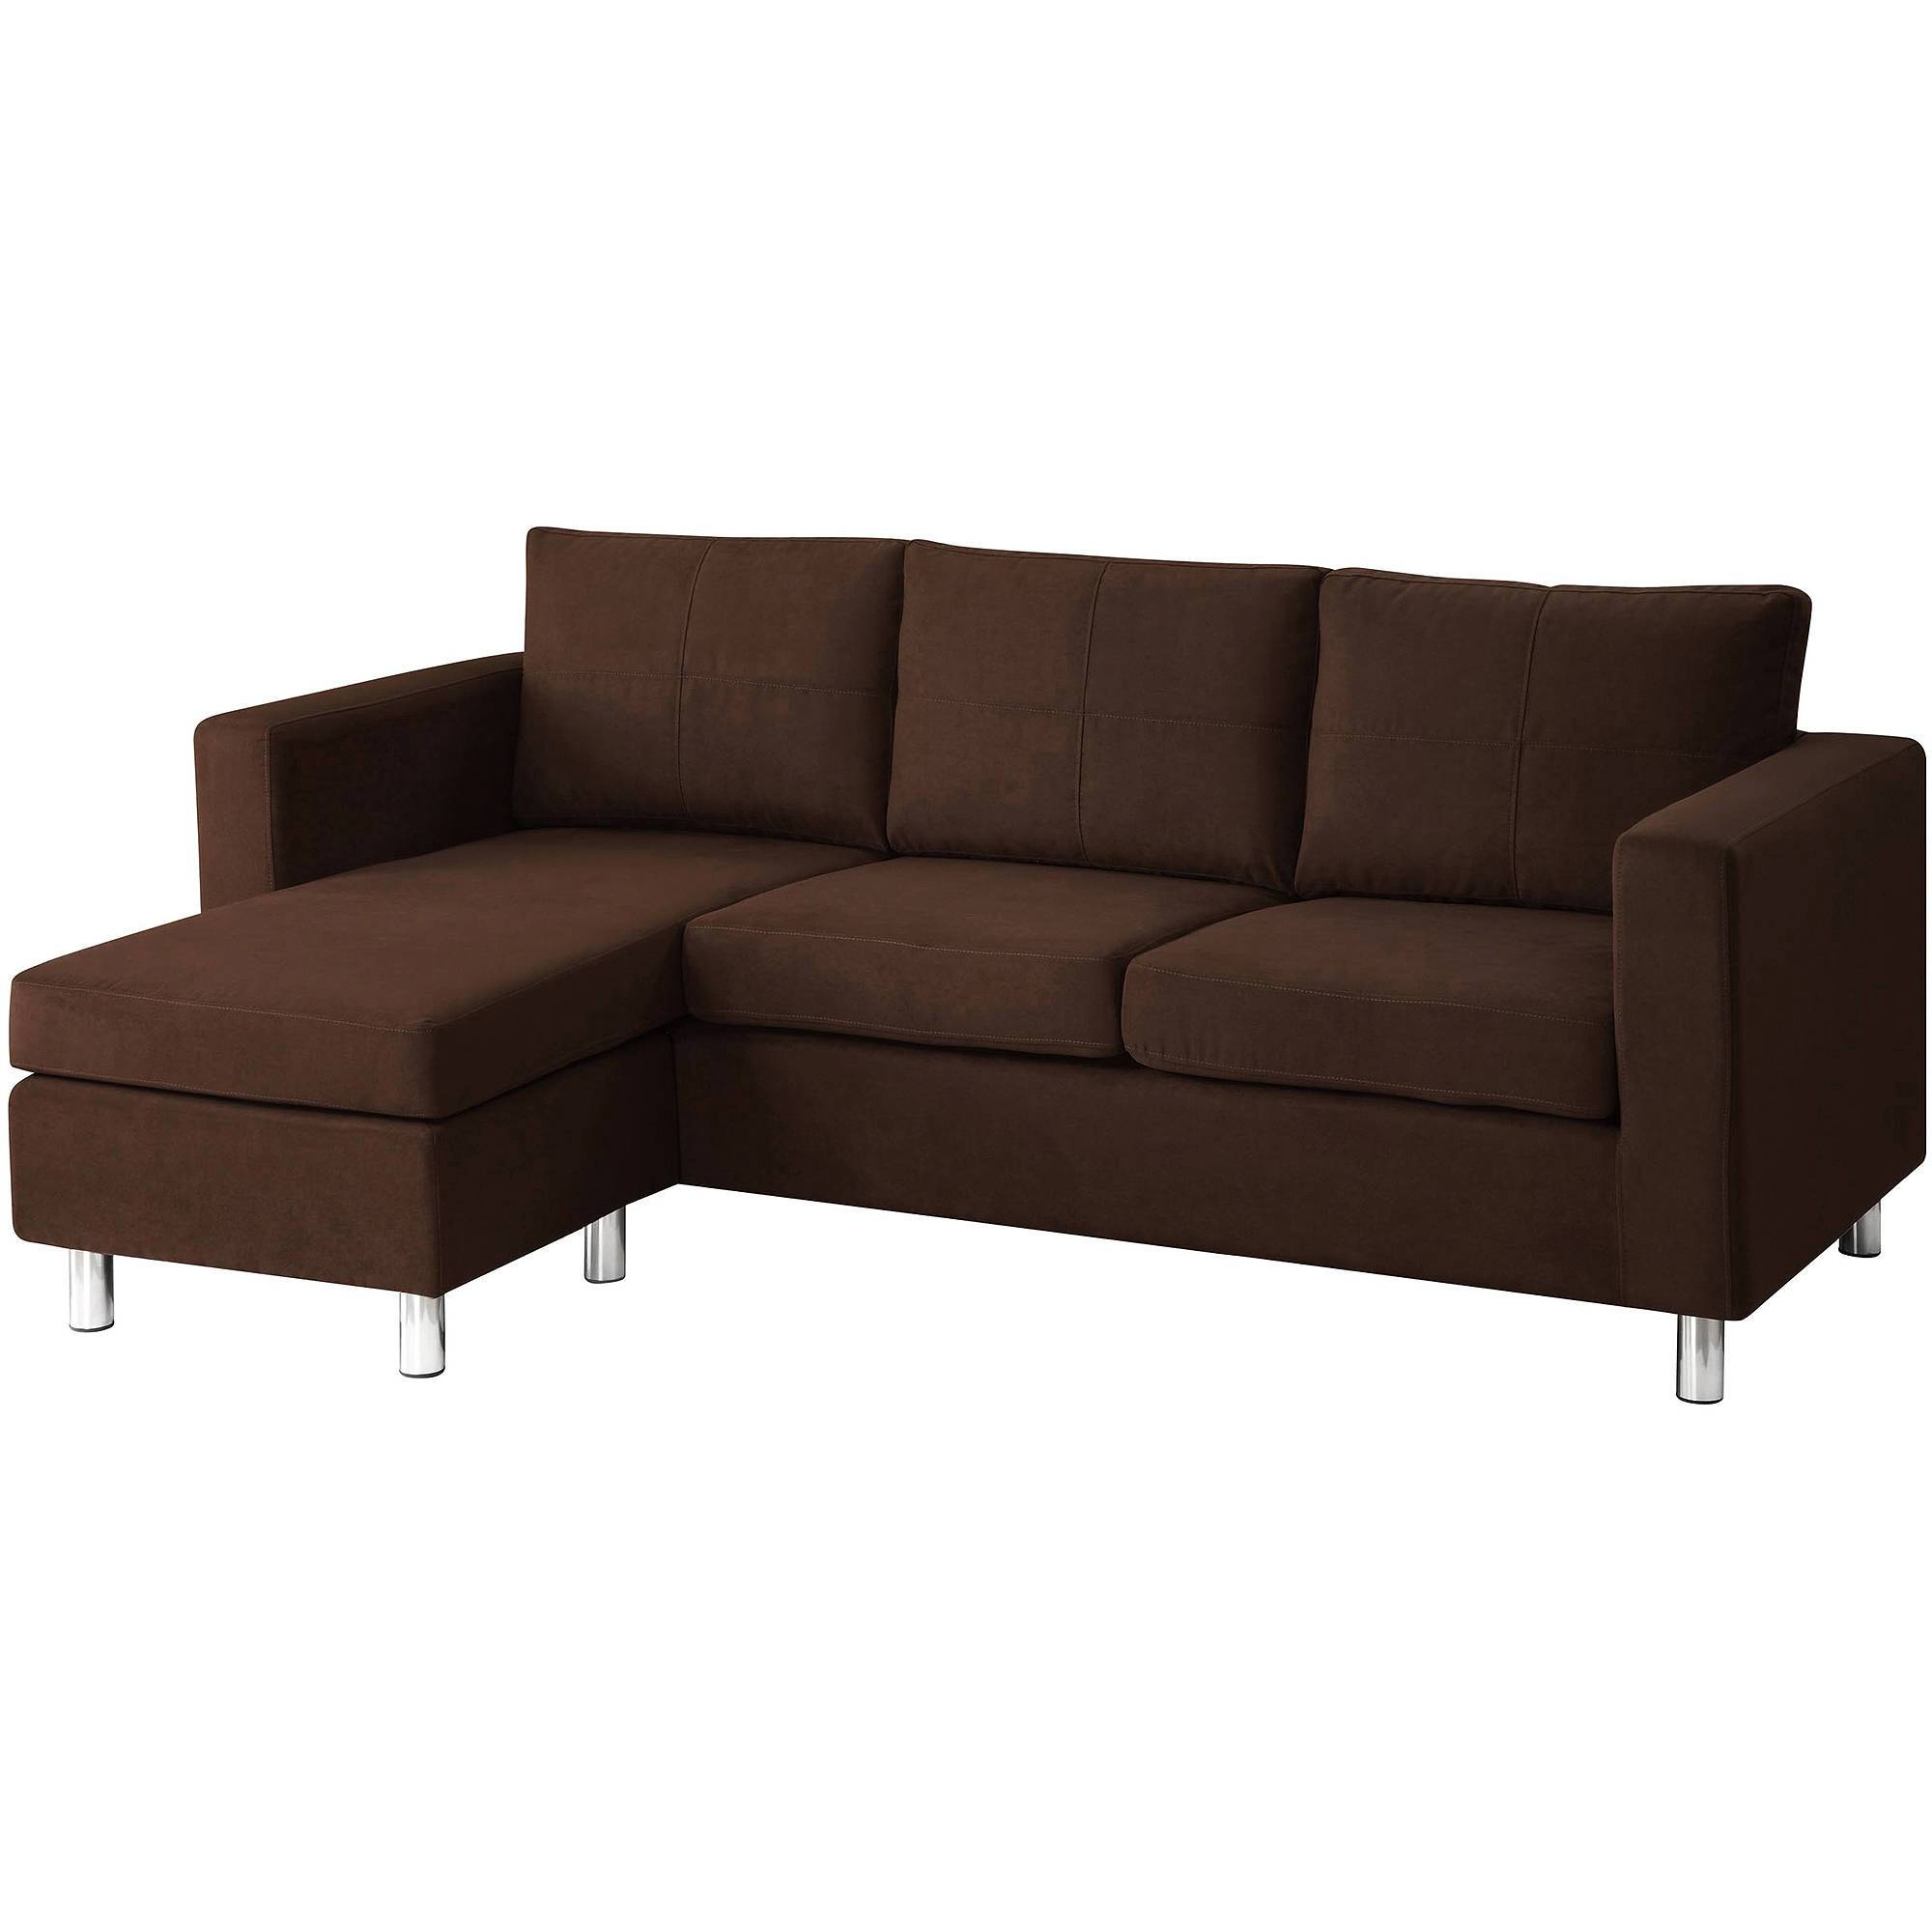 Dorel Home Small Spaces Configurable Sectional Sofa, Multiple inside Wallmart Sofa (Image 7 of 25)